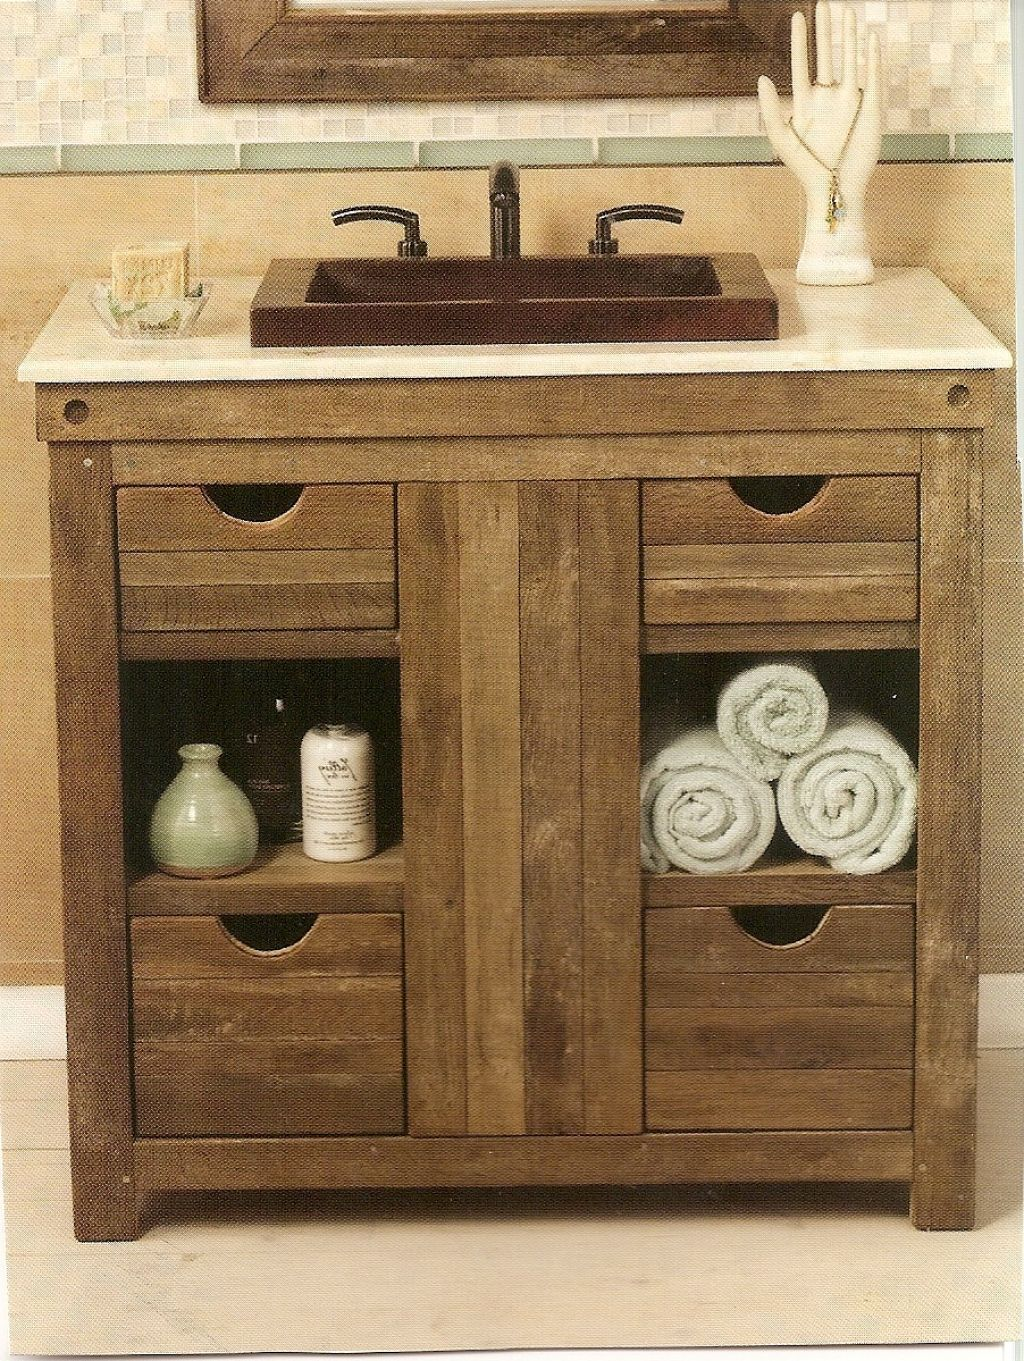 25 Incredible Vanities For Small Bathrooms With Examples Images     Vanities for Small Bathrooms 7 More